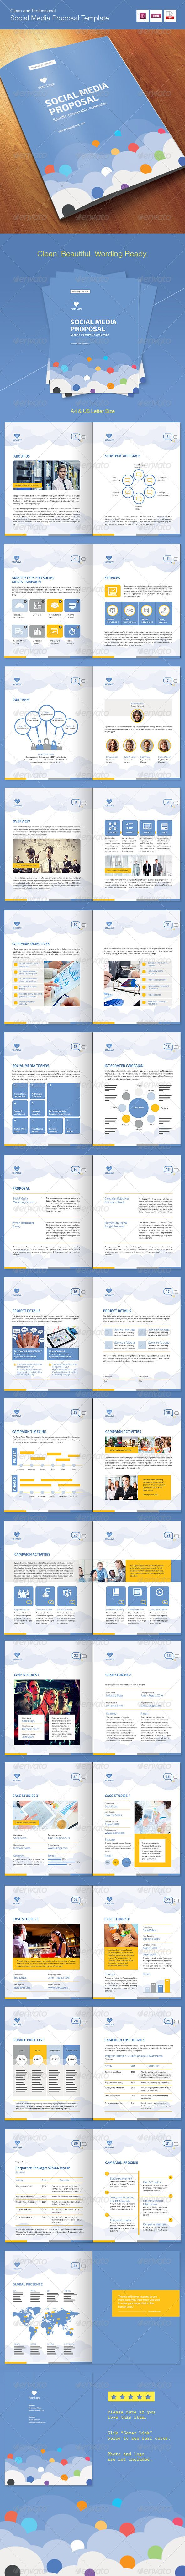 Social Media Proposal Template   Agreement Blue Brochure